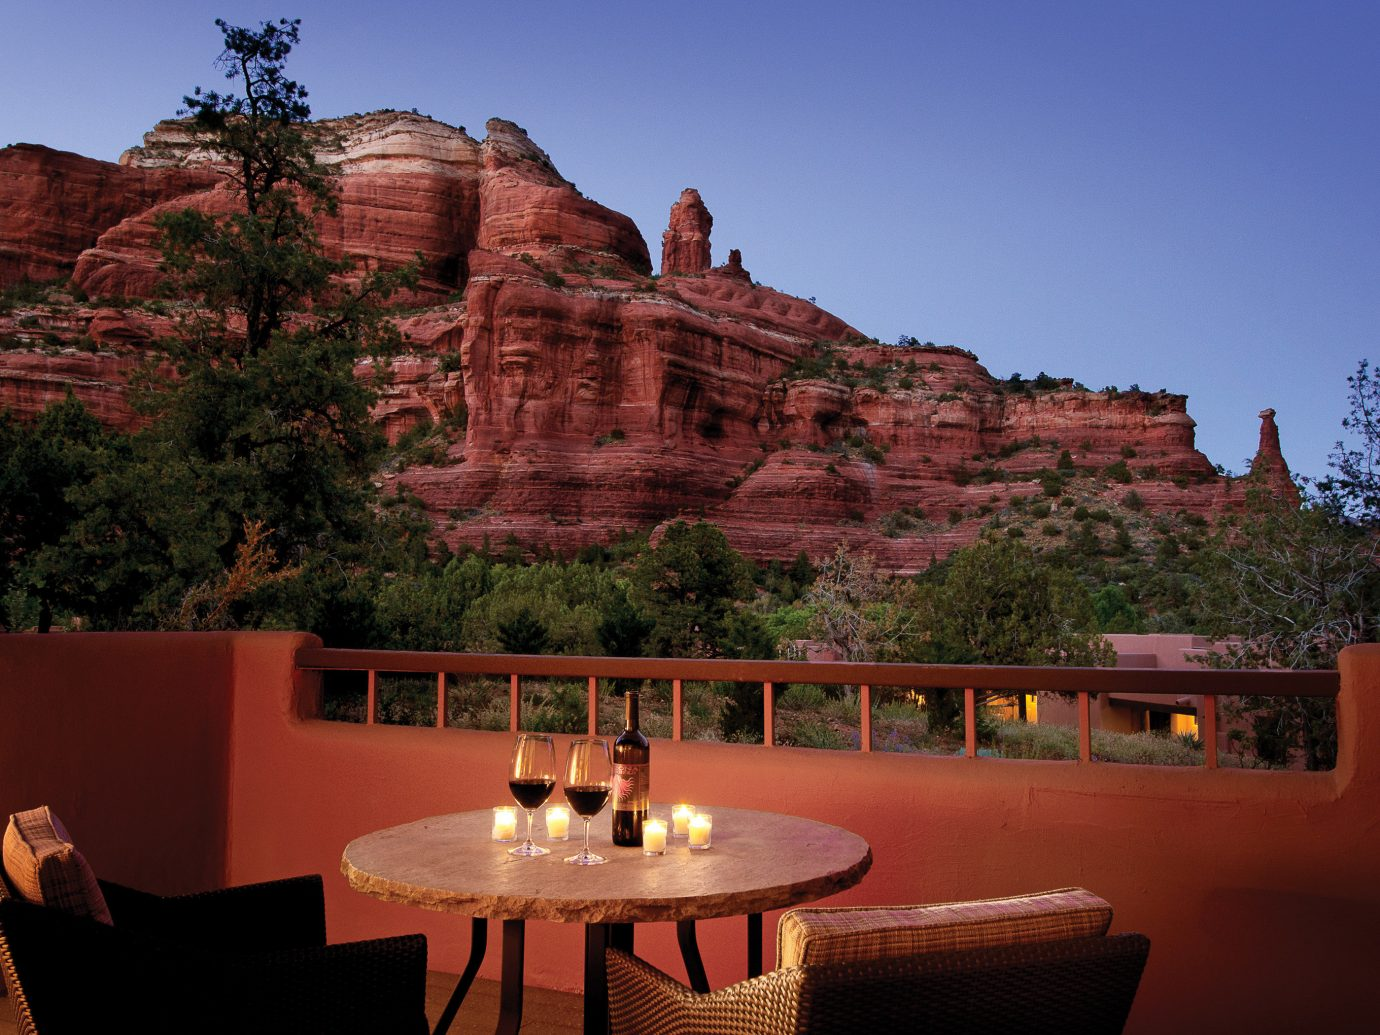 Hotels Jetsetter Guides Luxury Travel Trip Ideas Weekend Getaways sky Nature landmark Architecture wall mountain tourist attraction landscape rock red national park home tree canyon evening house tourism estate roof